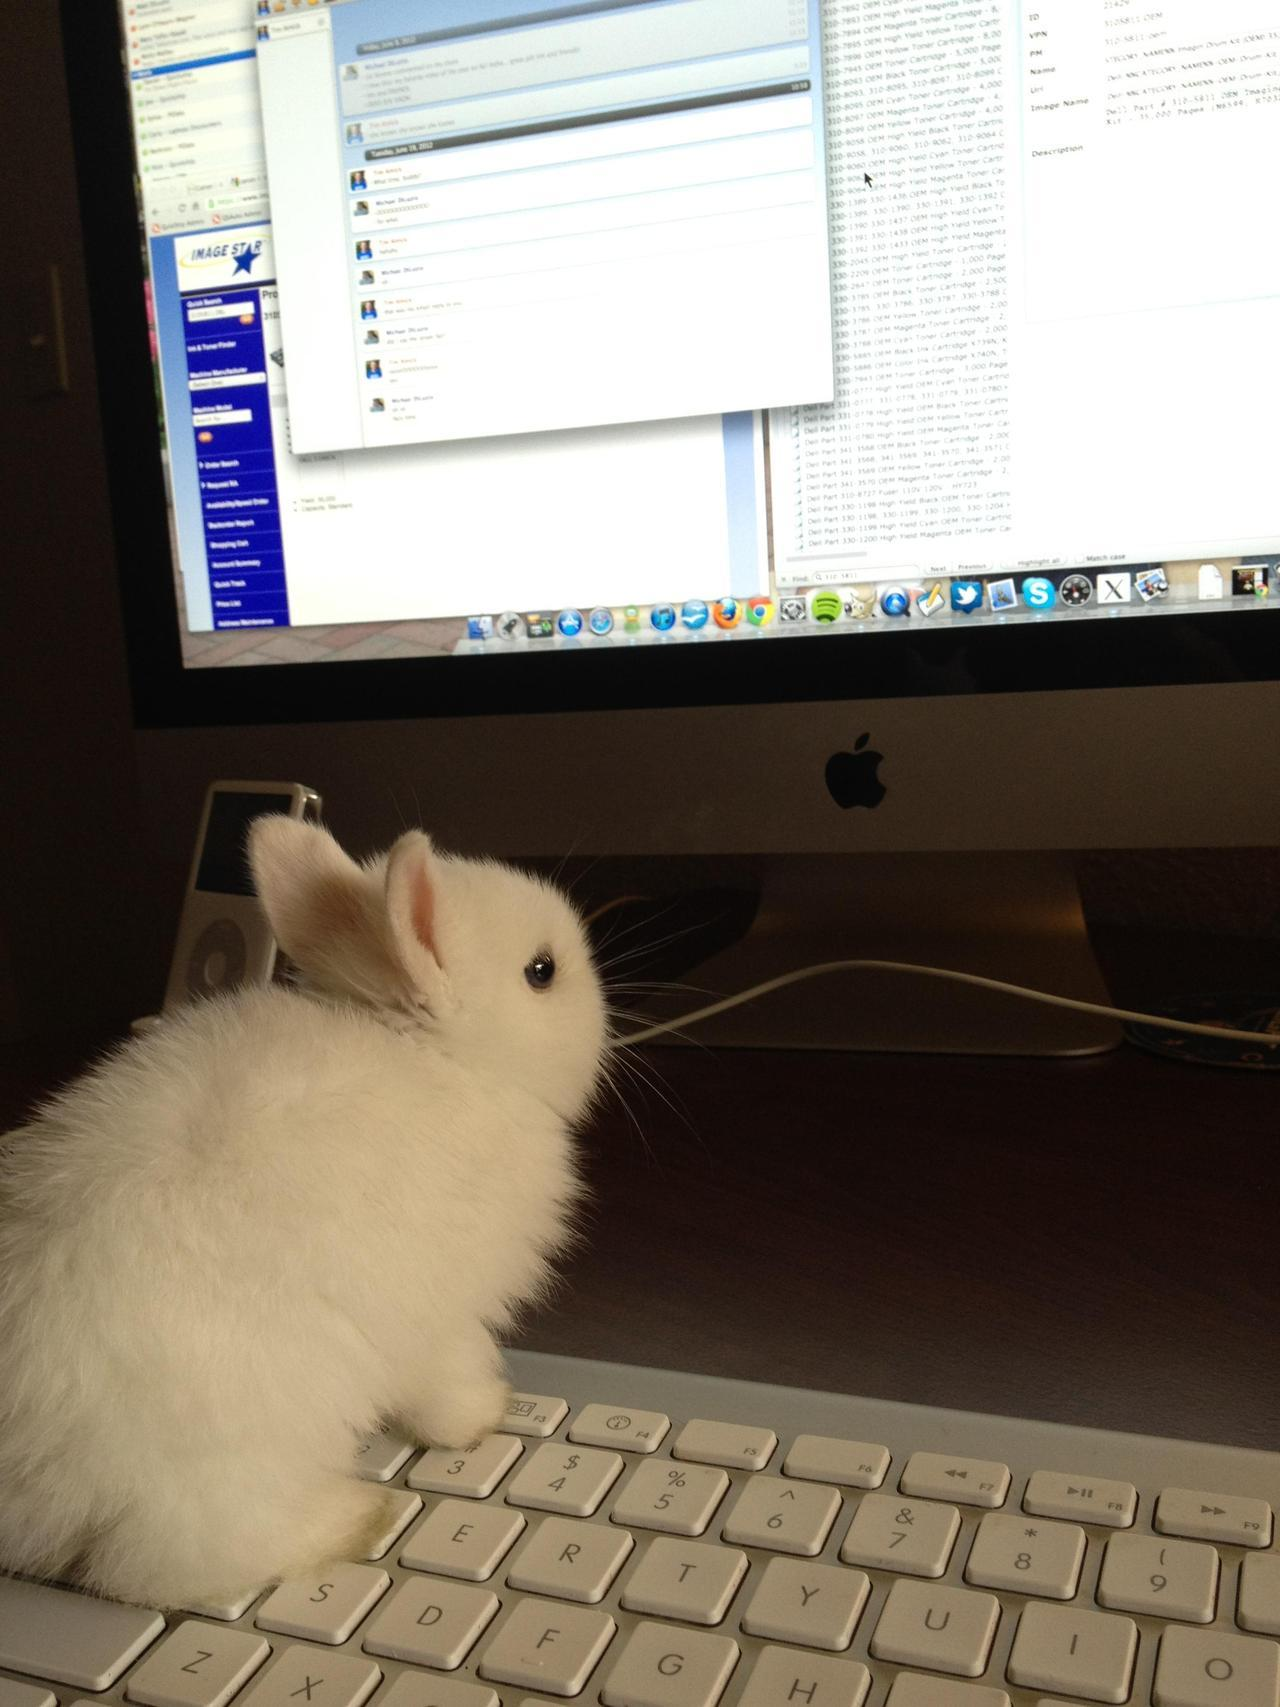 Helpful Bunny is helping. Photo via Imgur